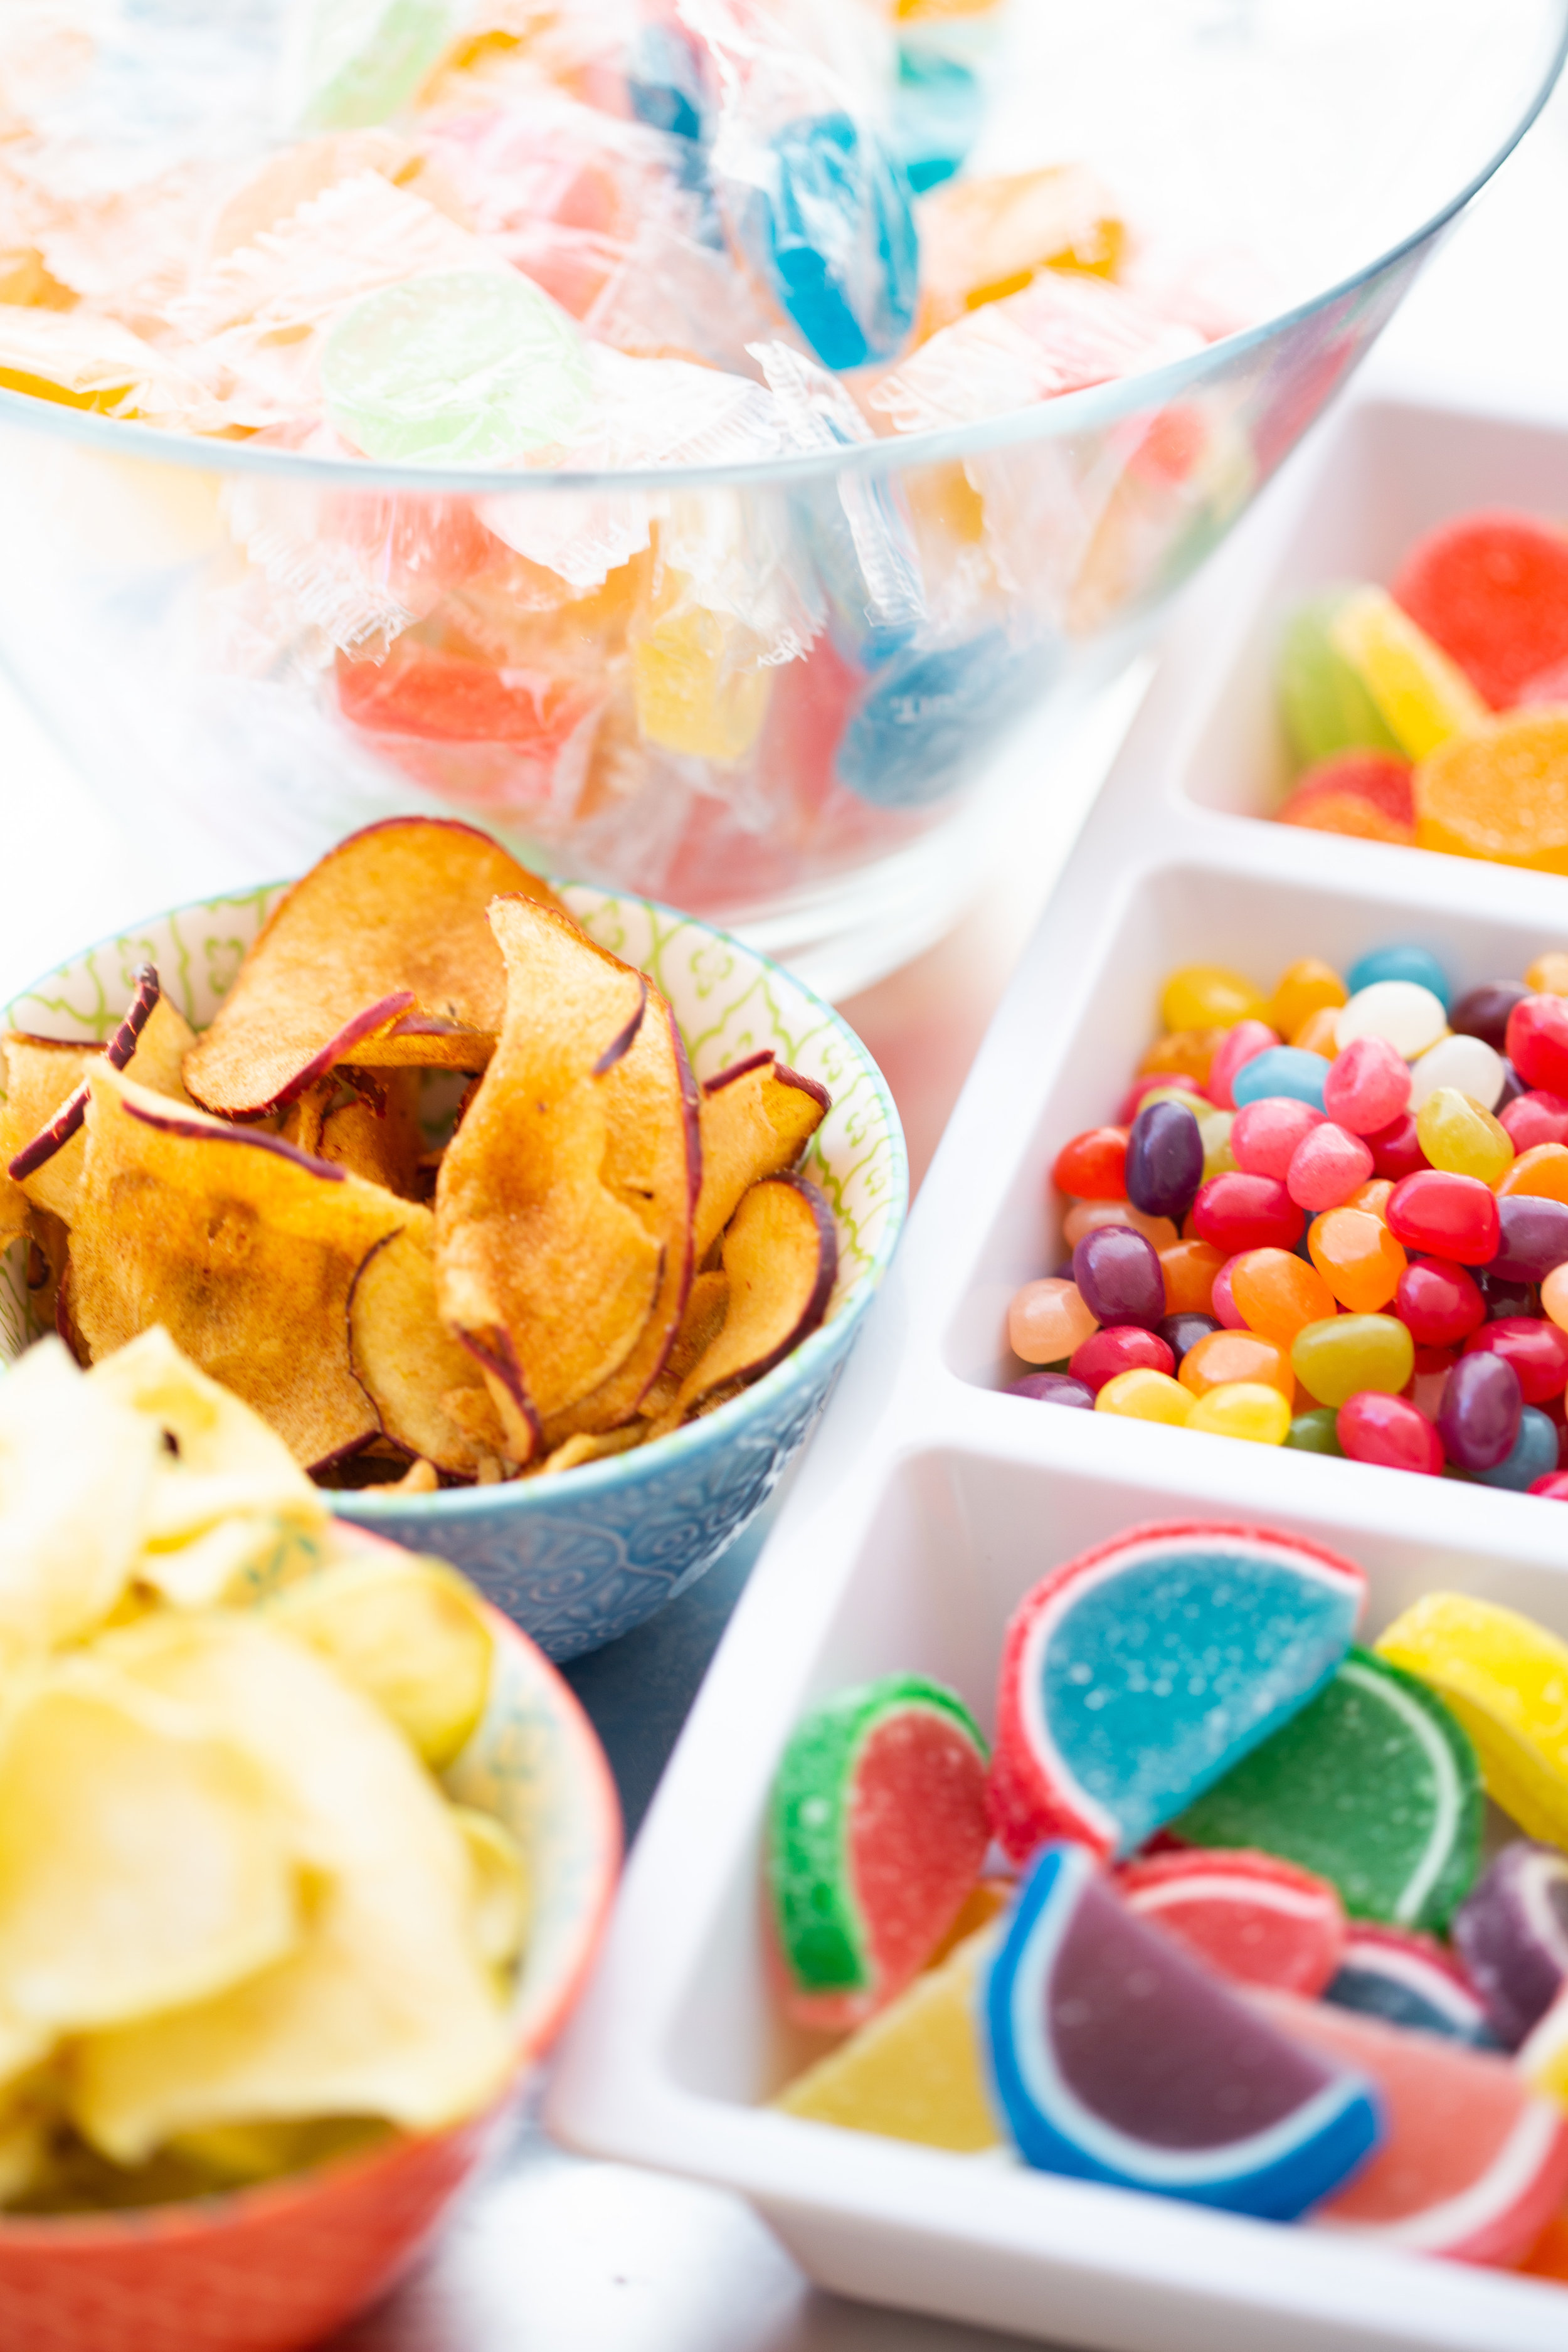 Orchard Sweet Foods -